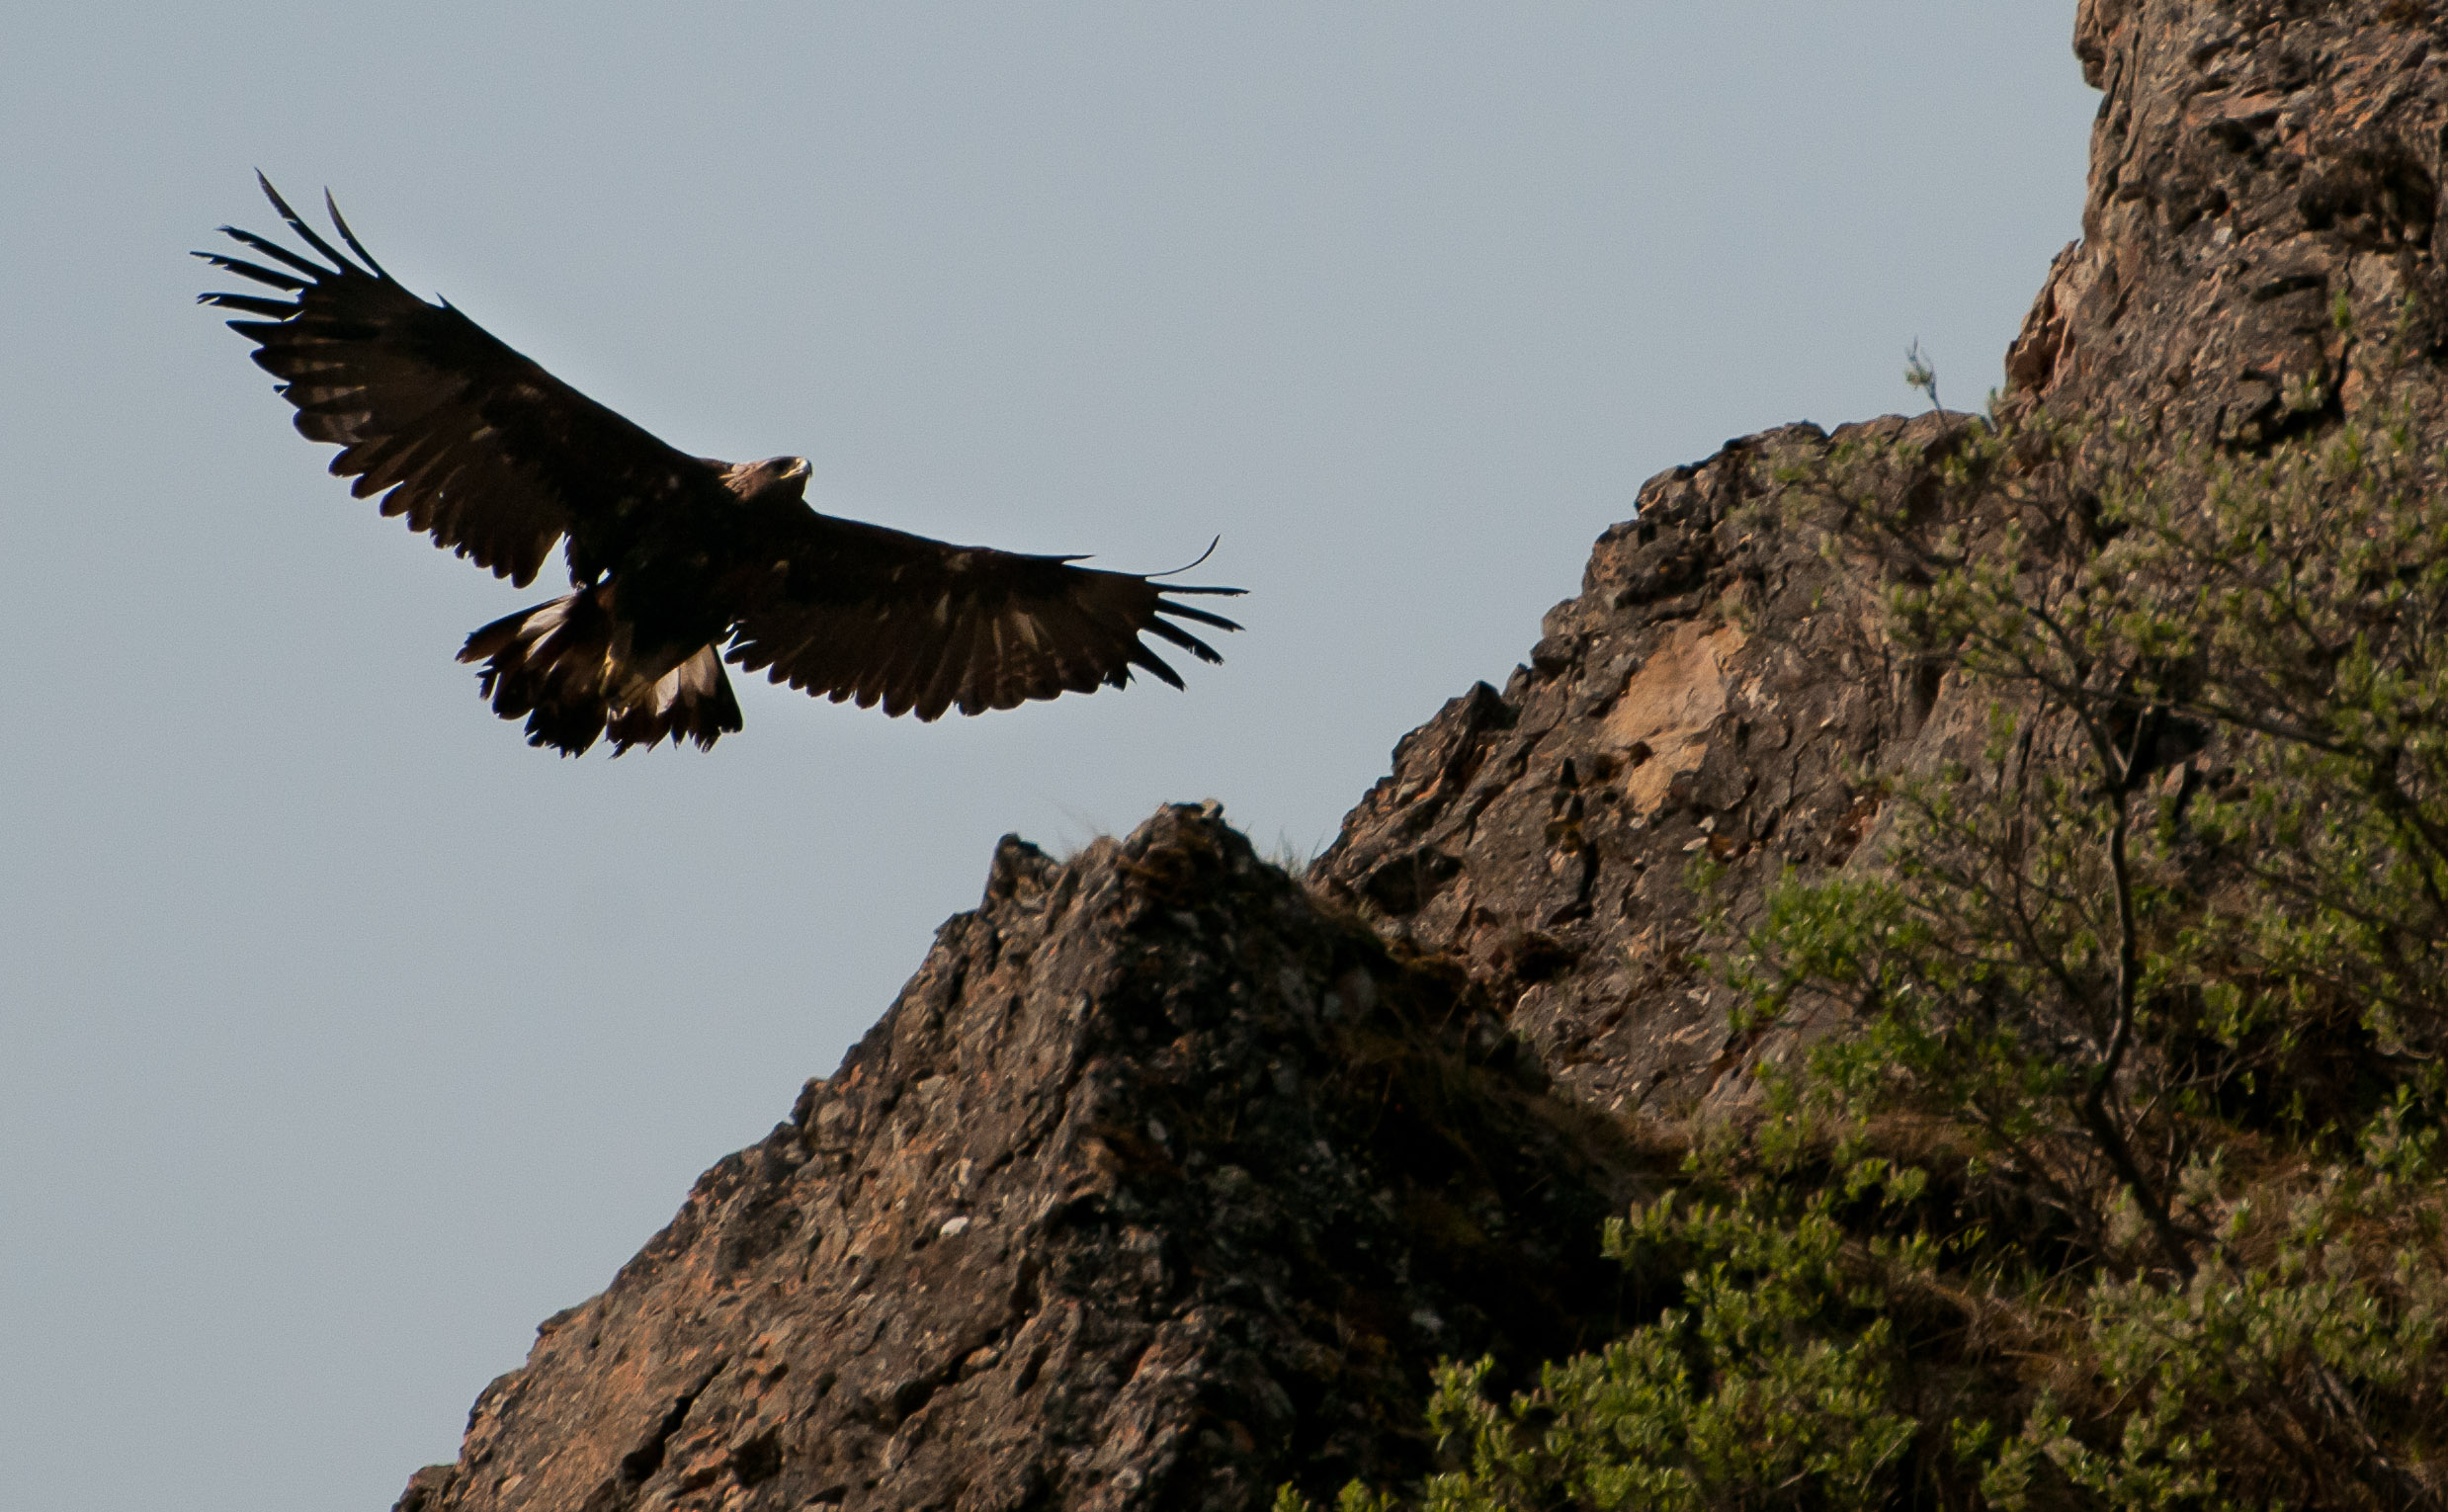 Golden eagle flies through air